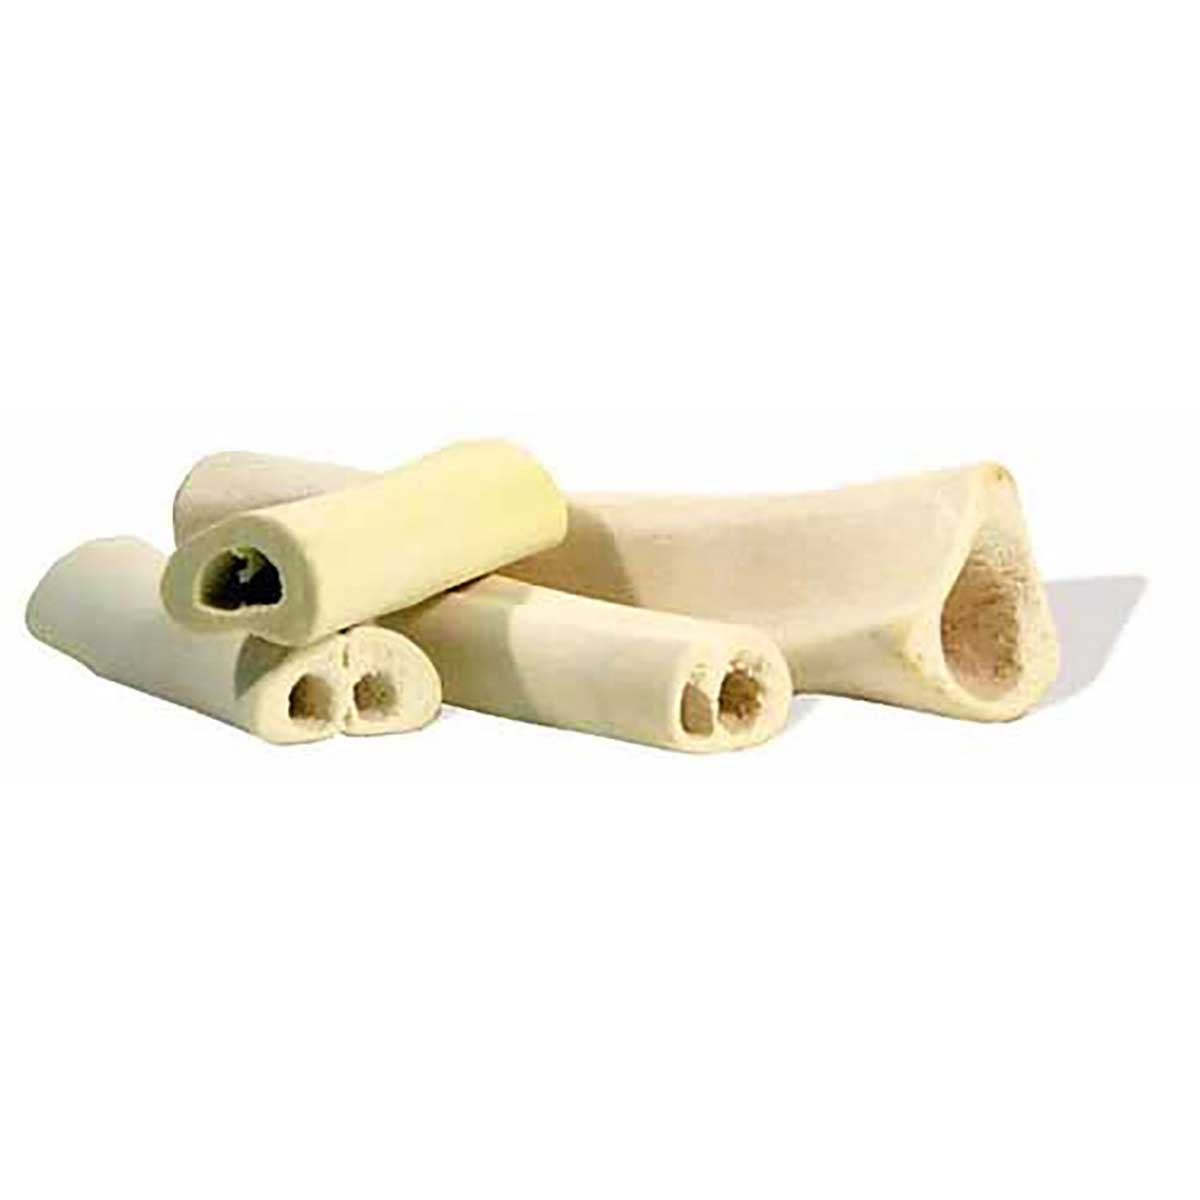 4 inch Sterilized Natural Bones Treat for Dogs